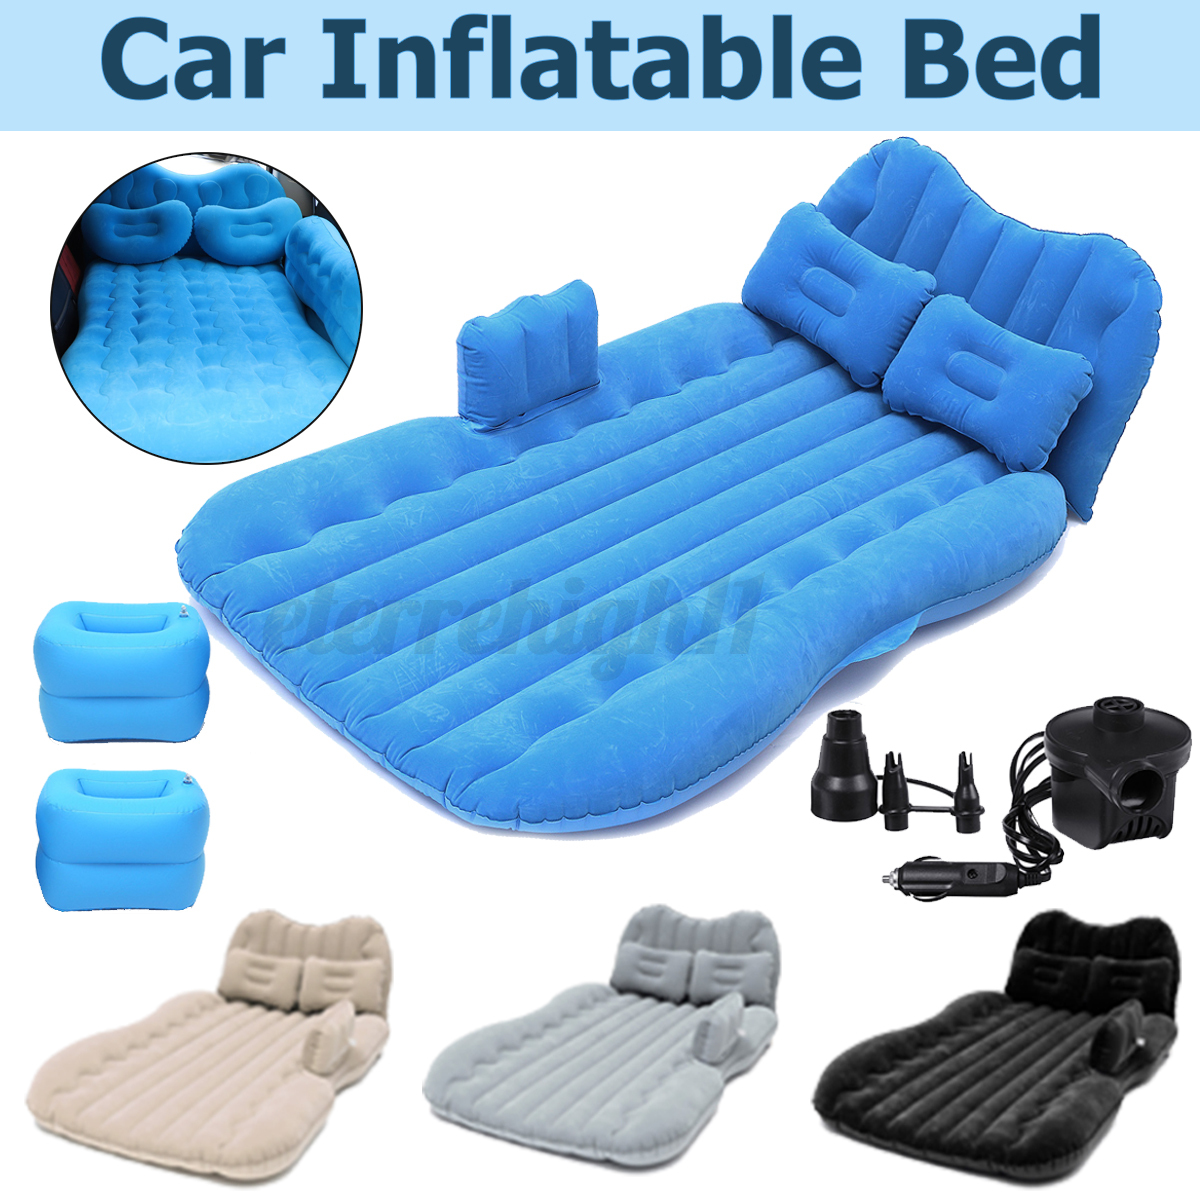 inflatable car air bed back seat mattress kit with 2xpillows?2xstools?1xair pump